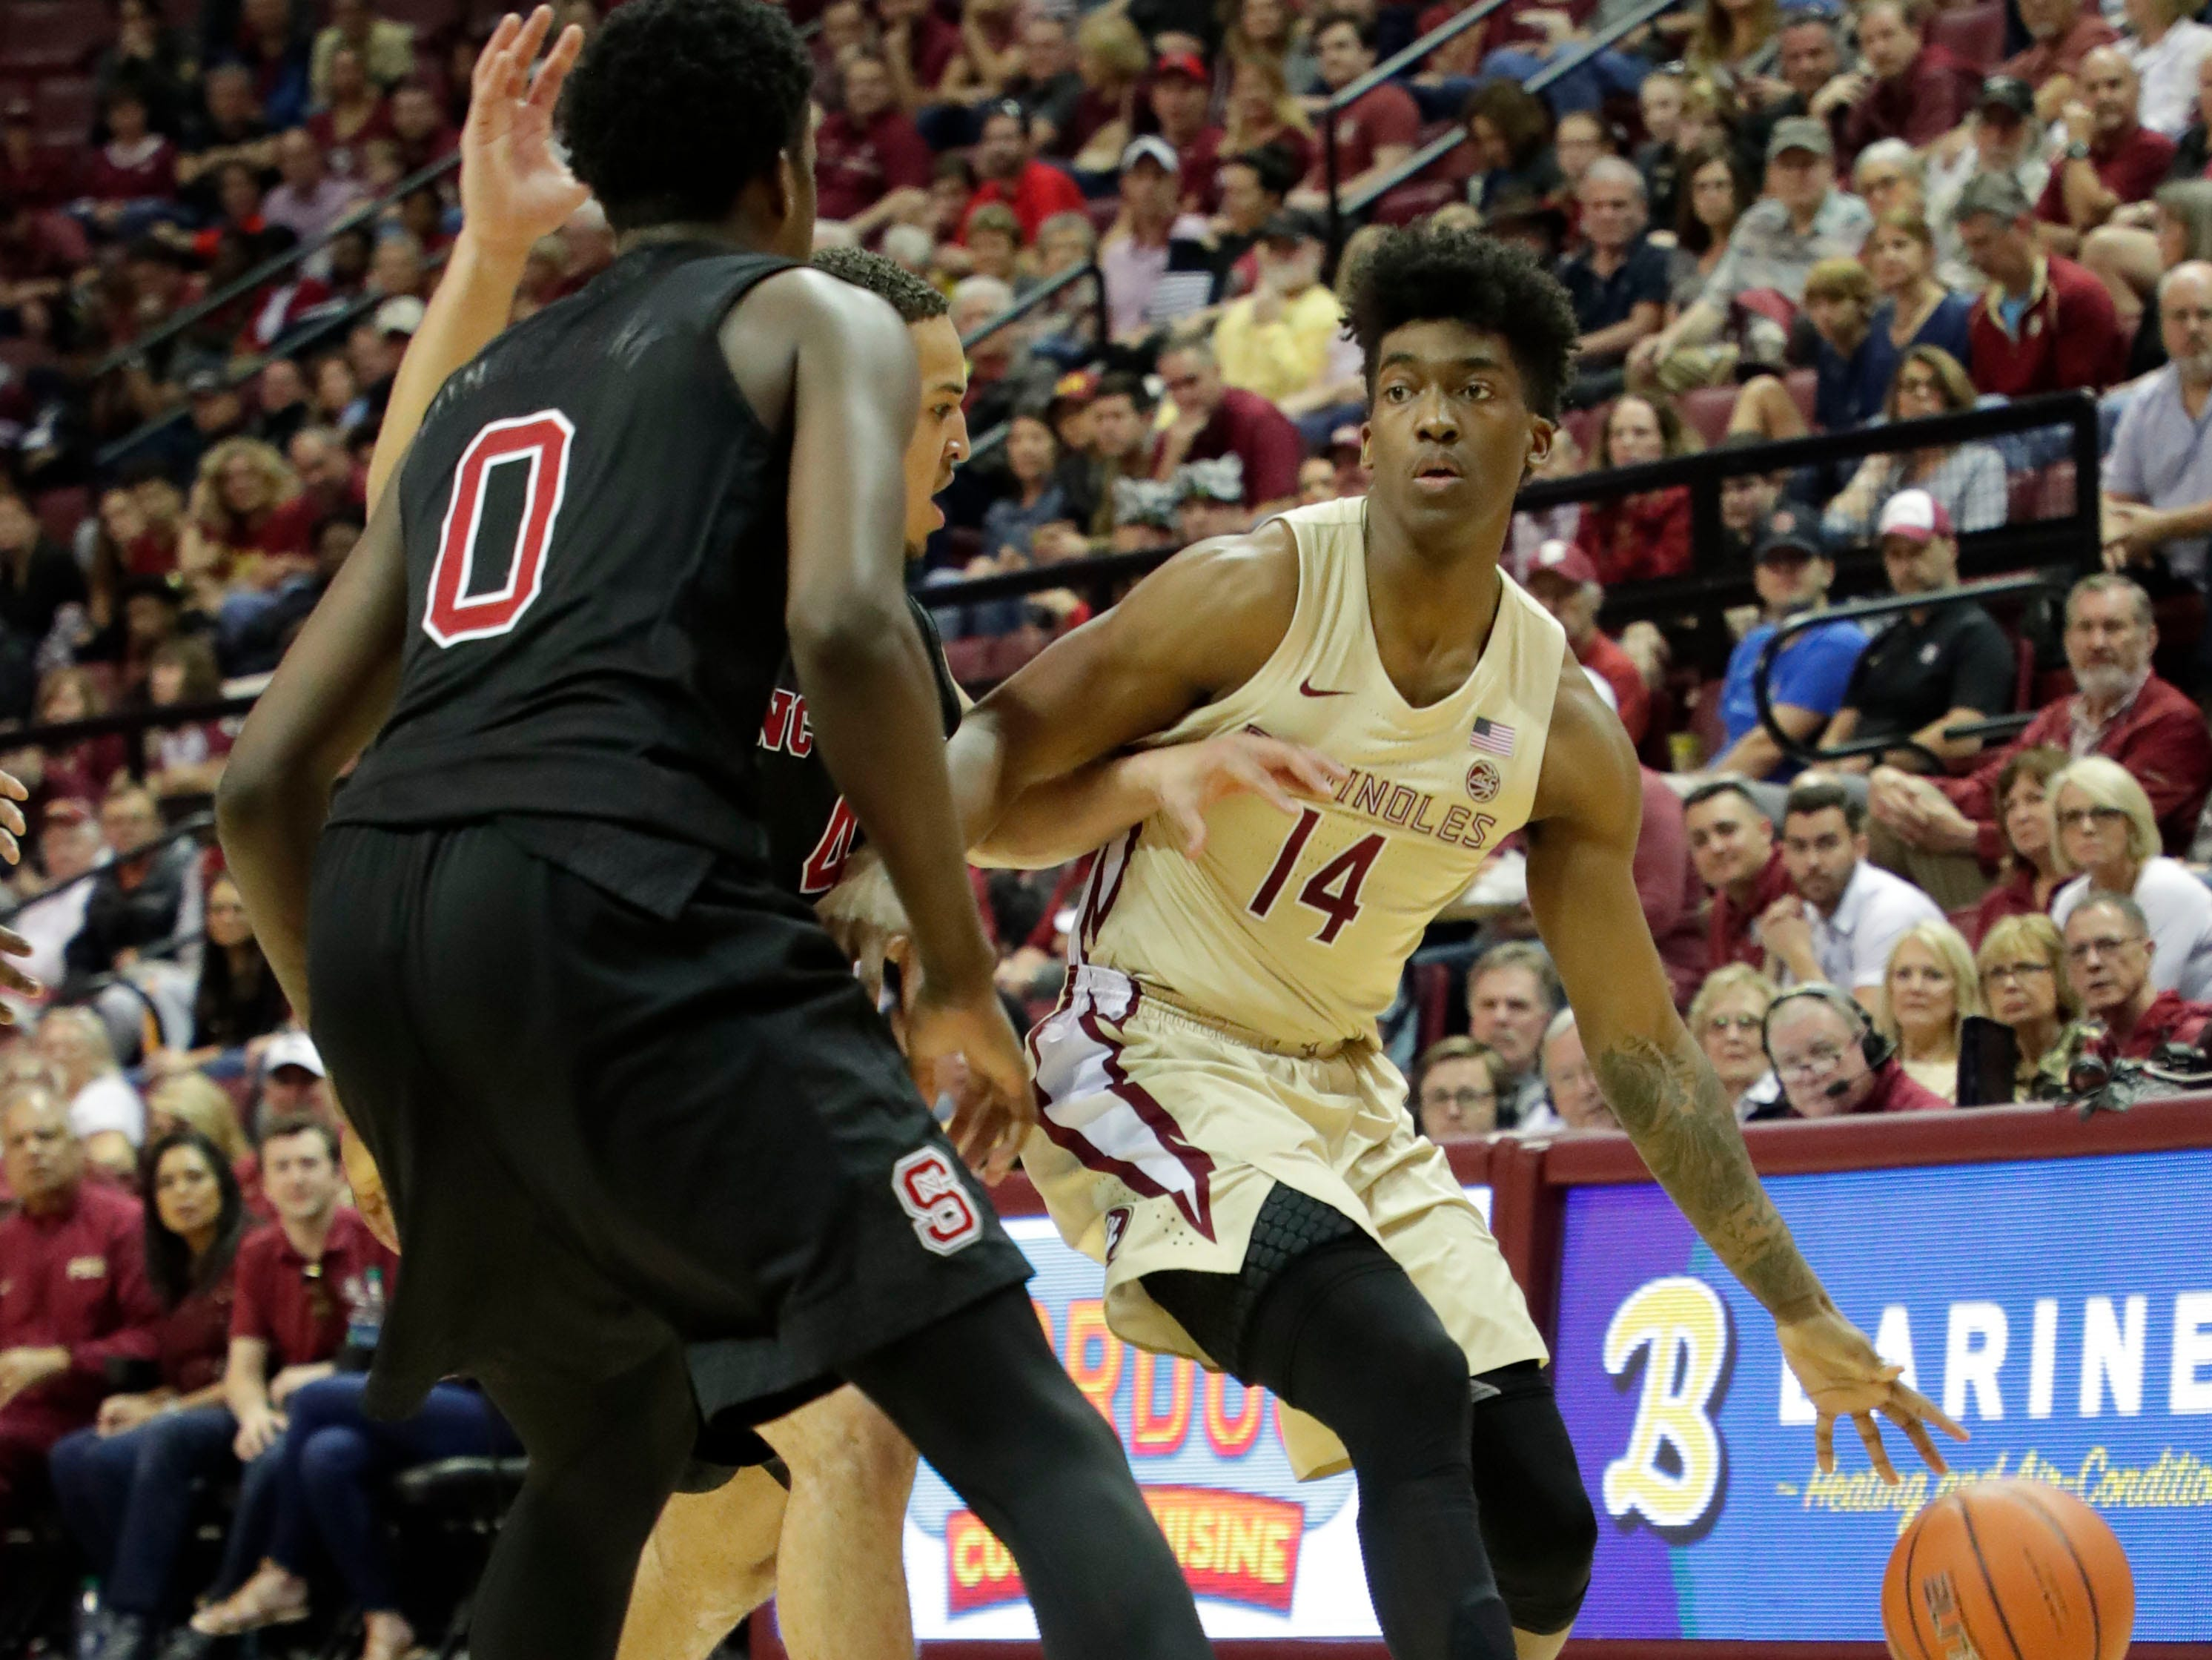 Florida State Seminoles guard Terance Mann (14) drives the ball to the hoop. The Florida State Seminoles host the NC State Wolfpack at the Tucker Civic Center Saturday, March 2, 2019.